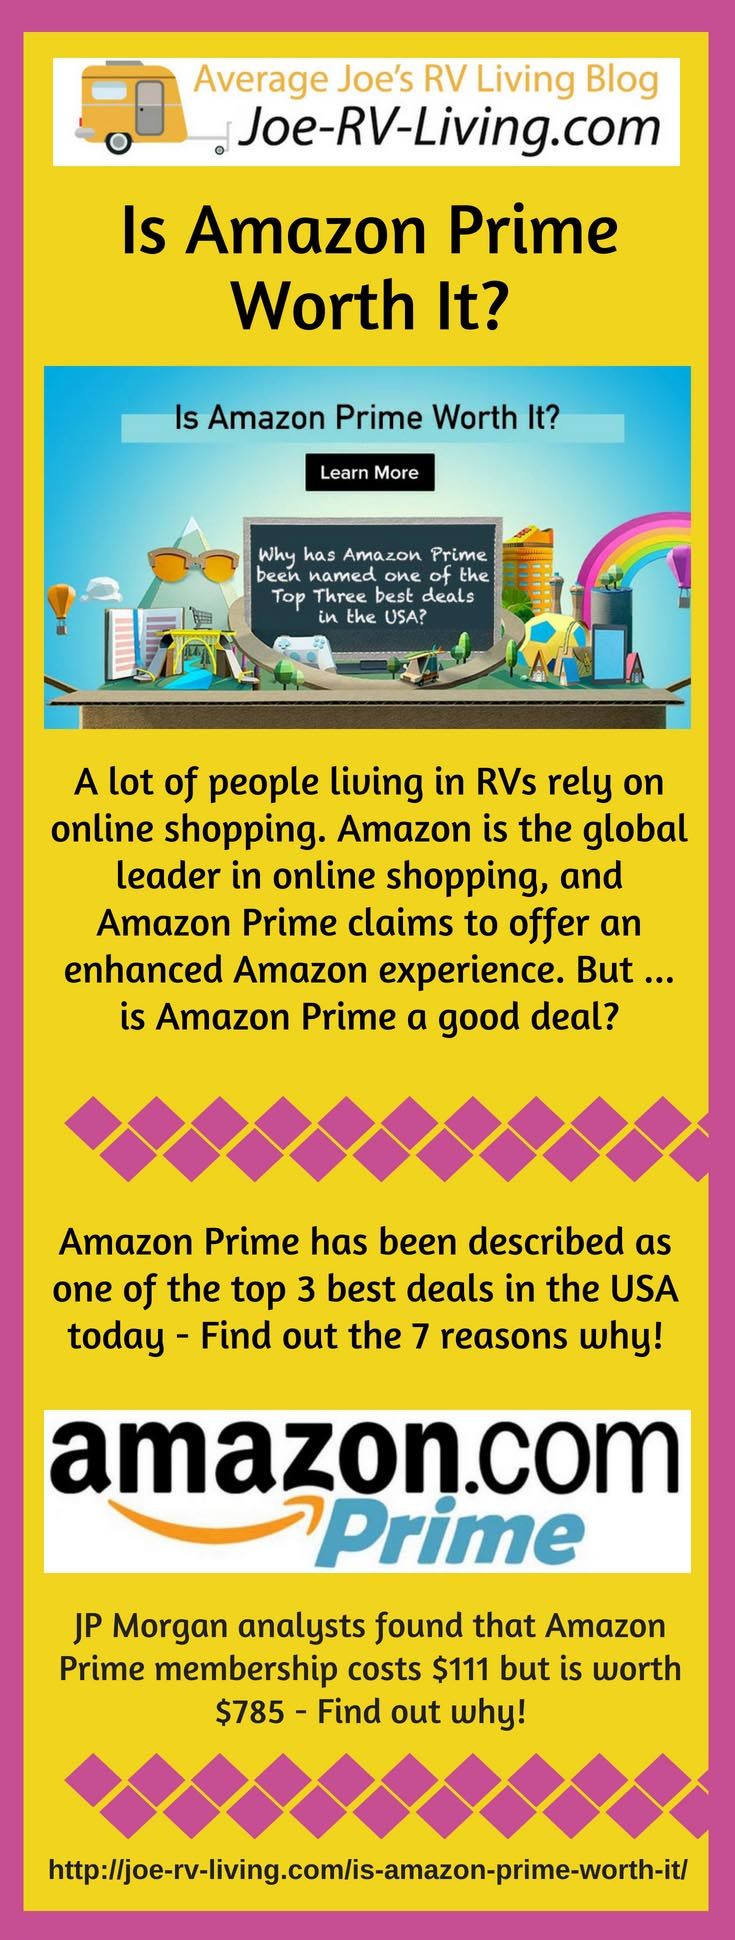 Is Amazon Prime Worth It for People Living in RVs?